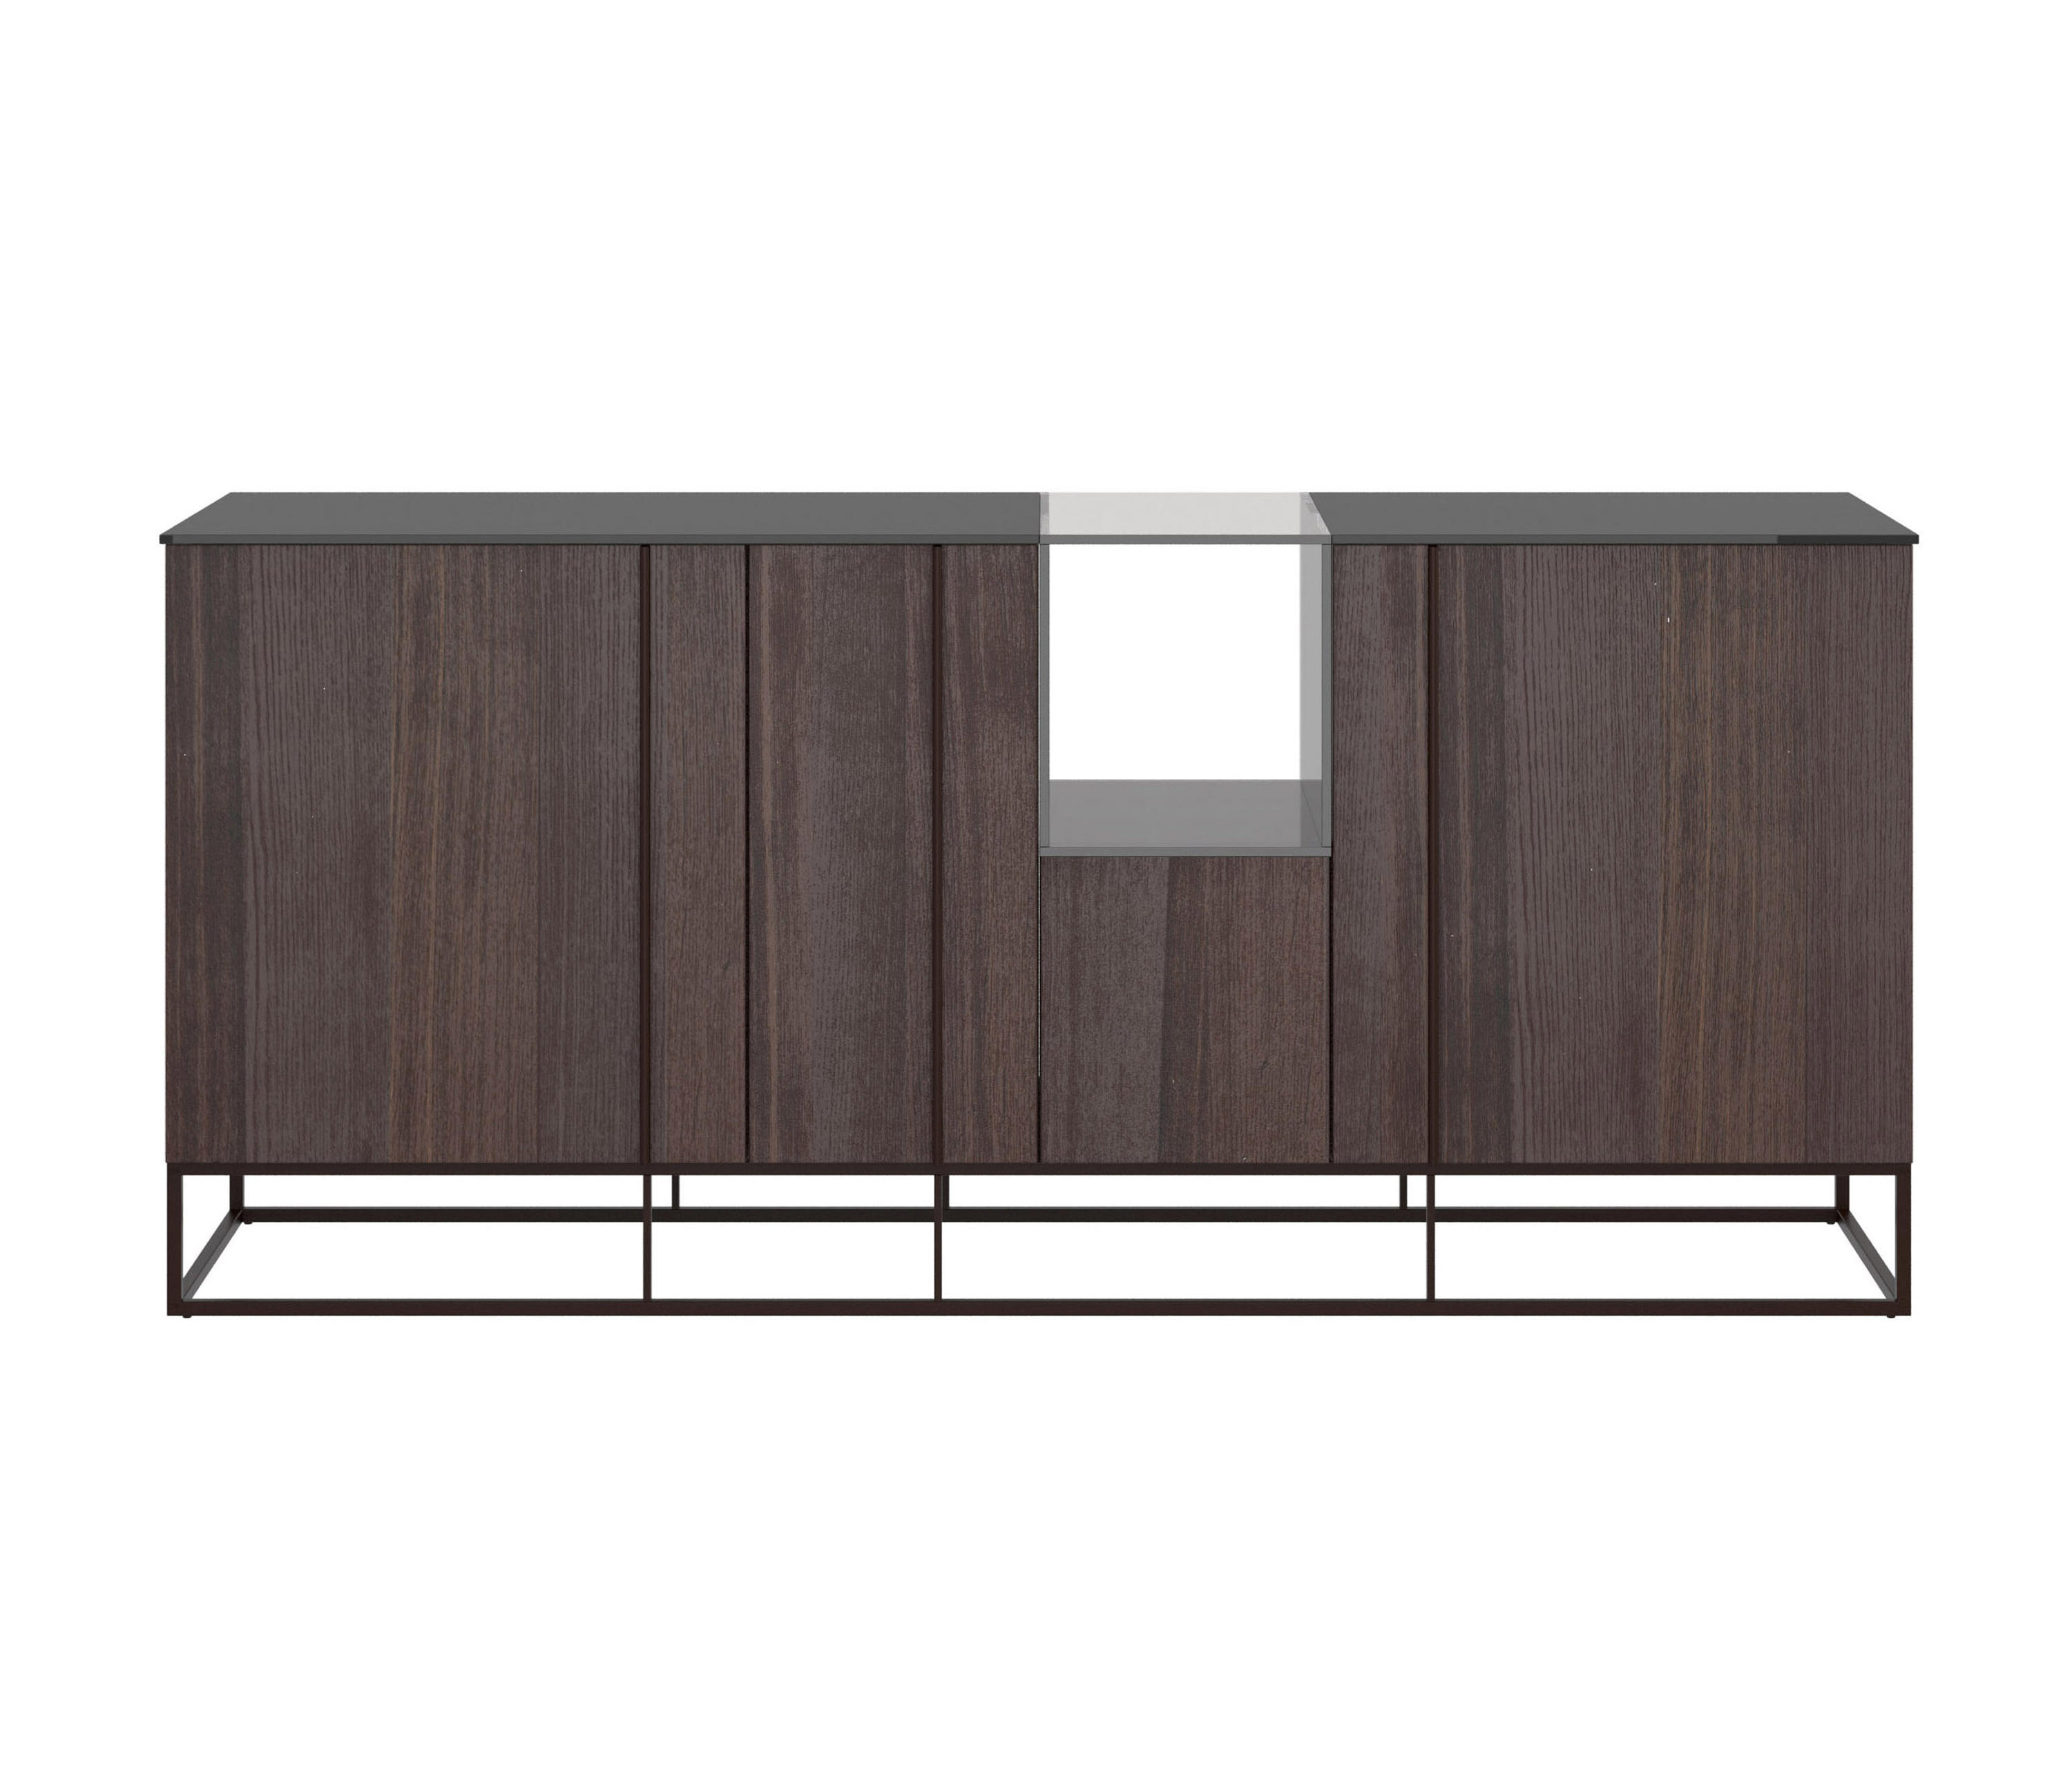 Inspiration about Tate – Sideboards / Kommoden Von Jesse | Architonic Intended For Current Tate Sideboards (#2 of 20)